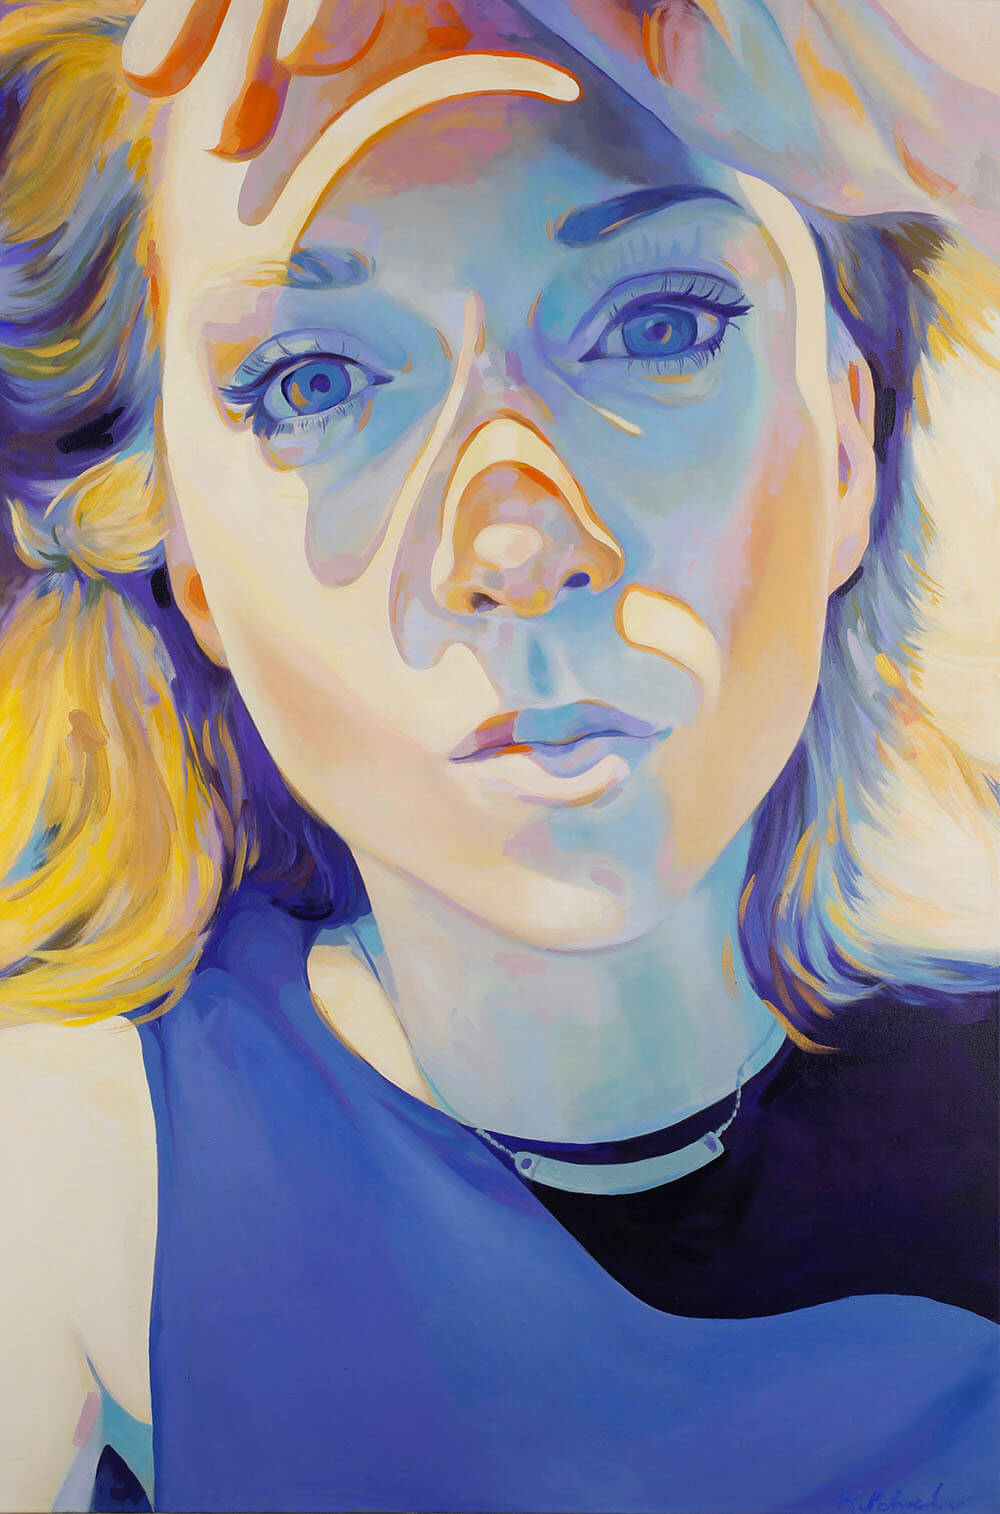 """Dreamed Before, 40""""x60"""" oil on canvas 2015-2017. Honorable Mention Recipient, Minnesota State Fair Fine Art Competition 2017."""